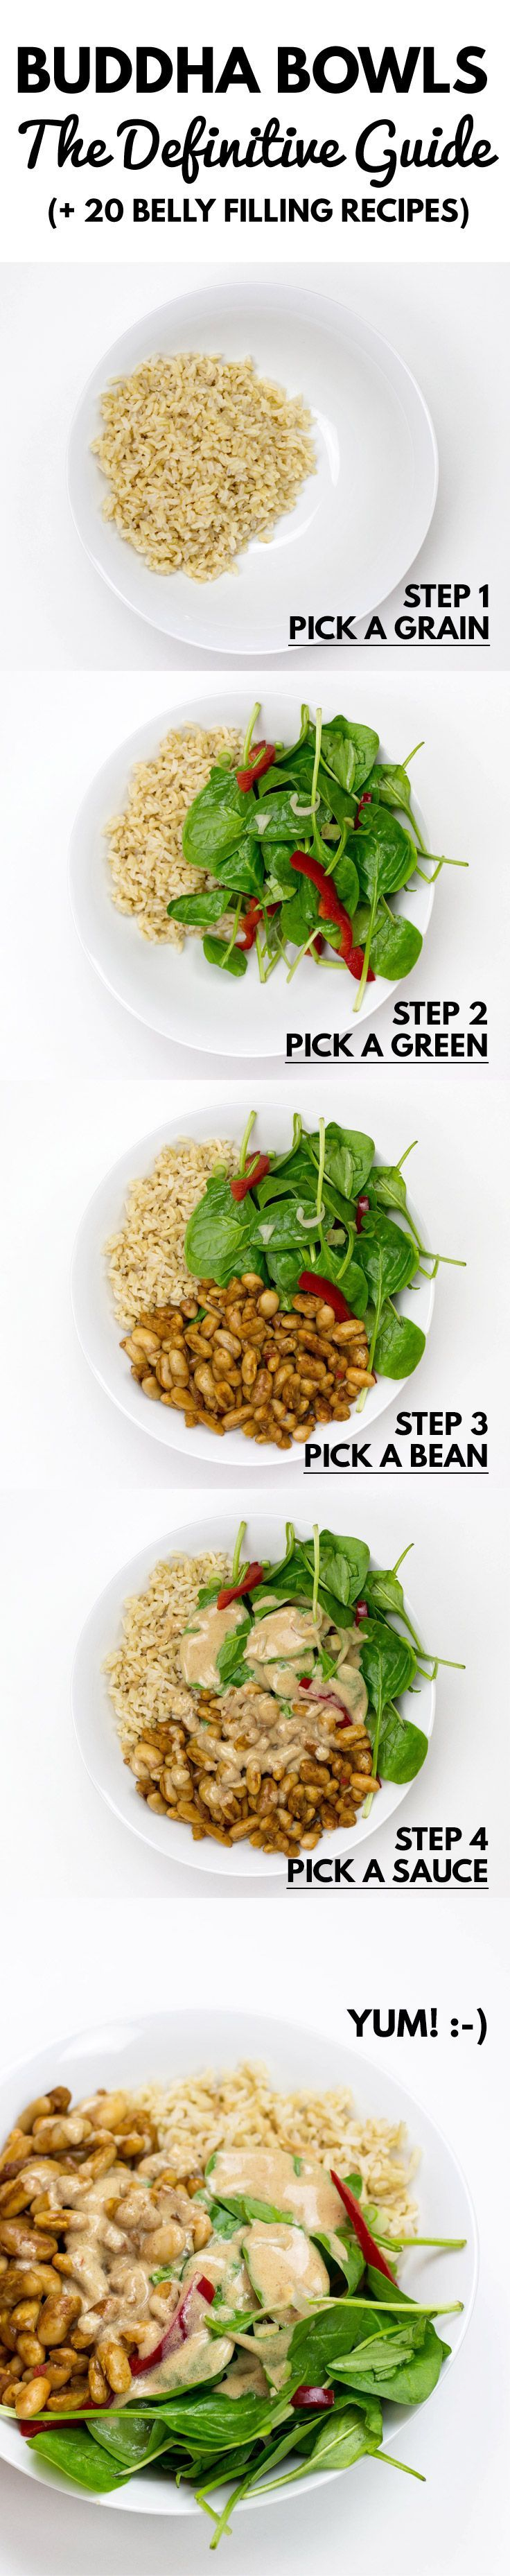 How to Make a Buddha Bowl - The Definitive Guide. | healthy recipe ideas @xhealthyrecipex |